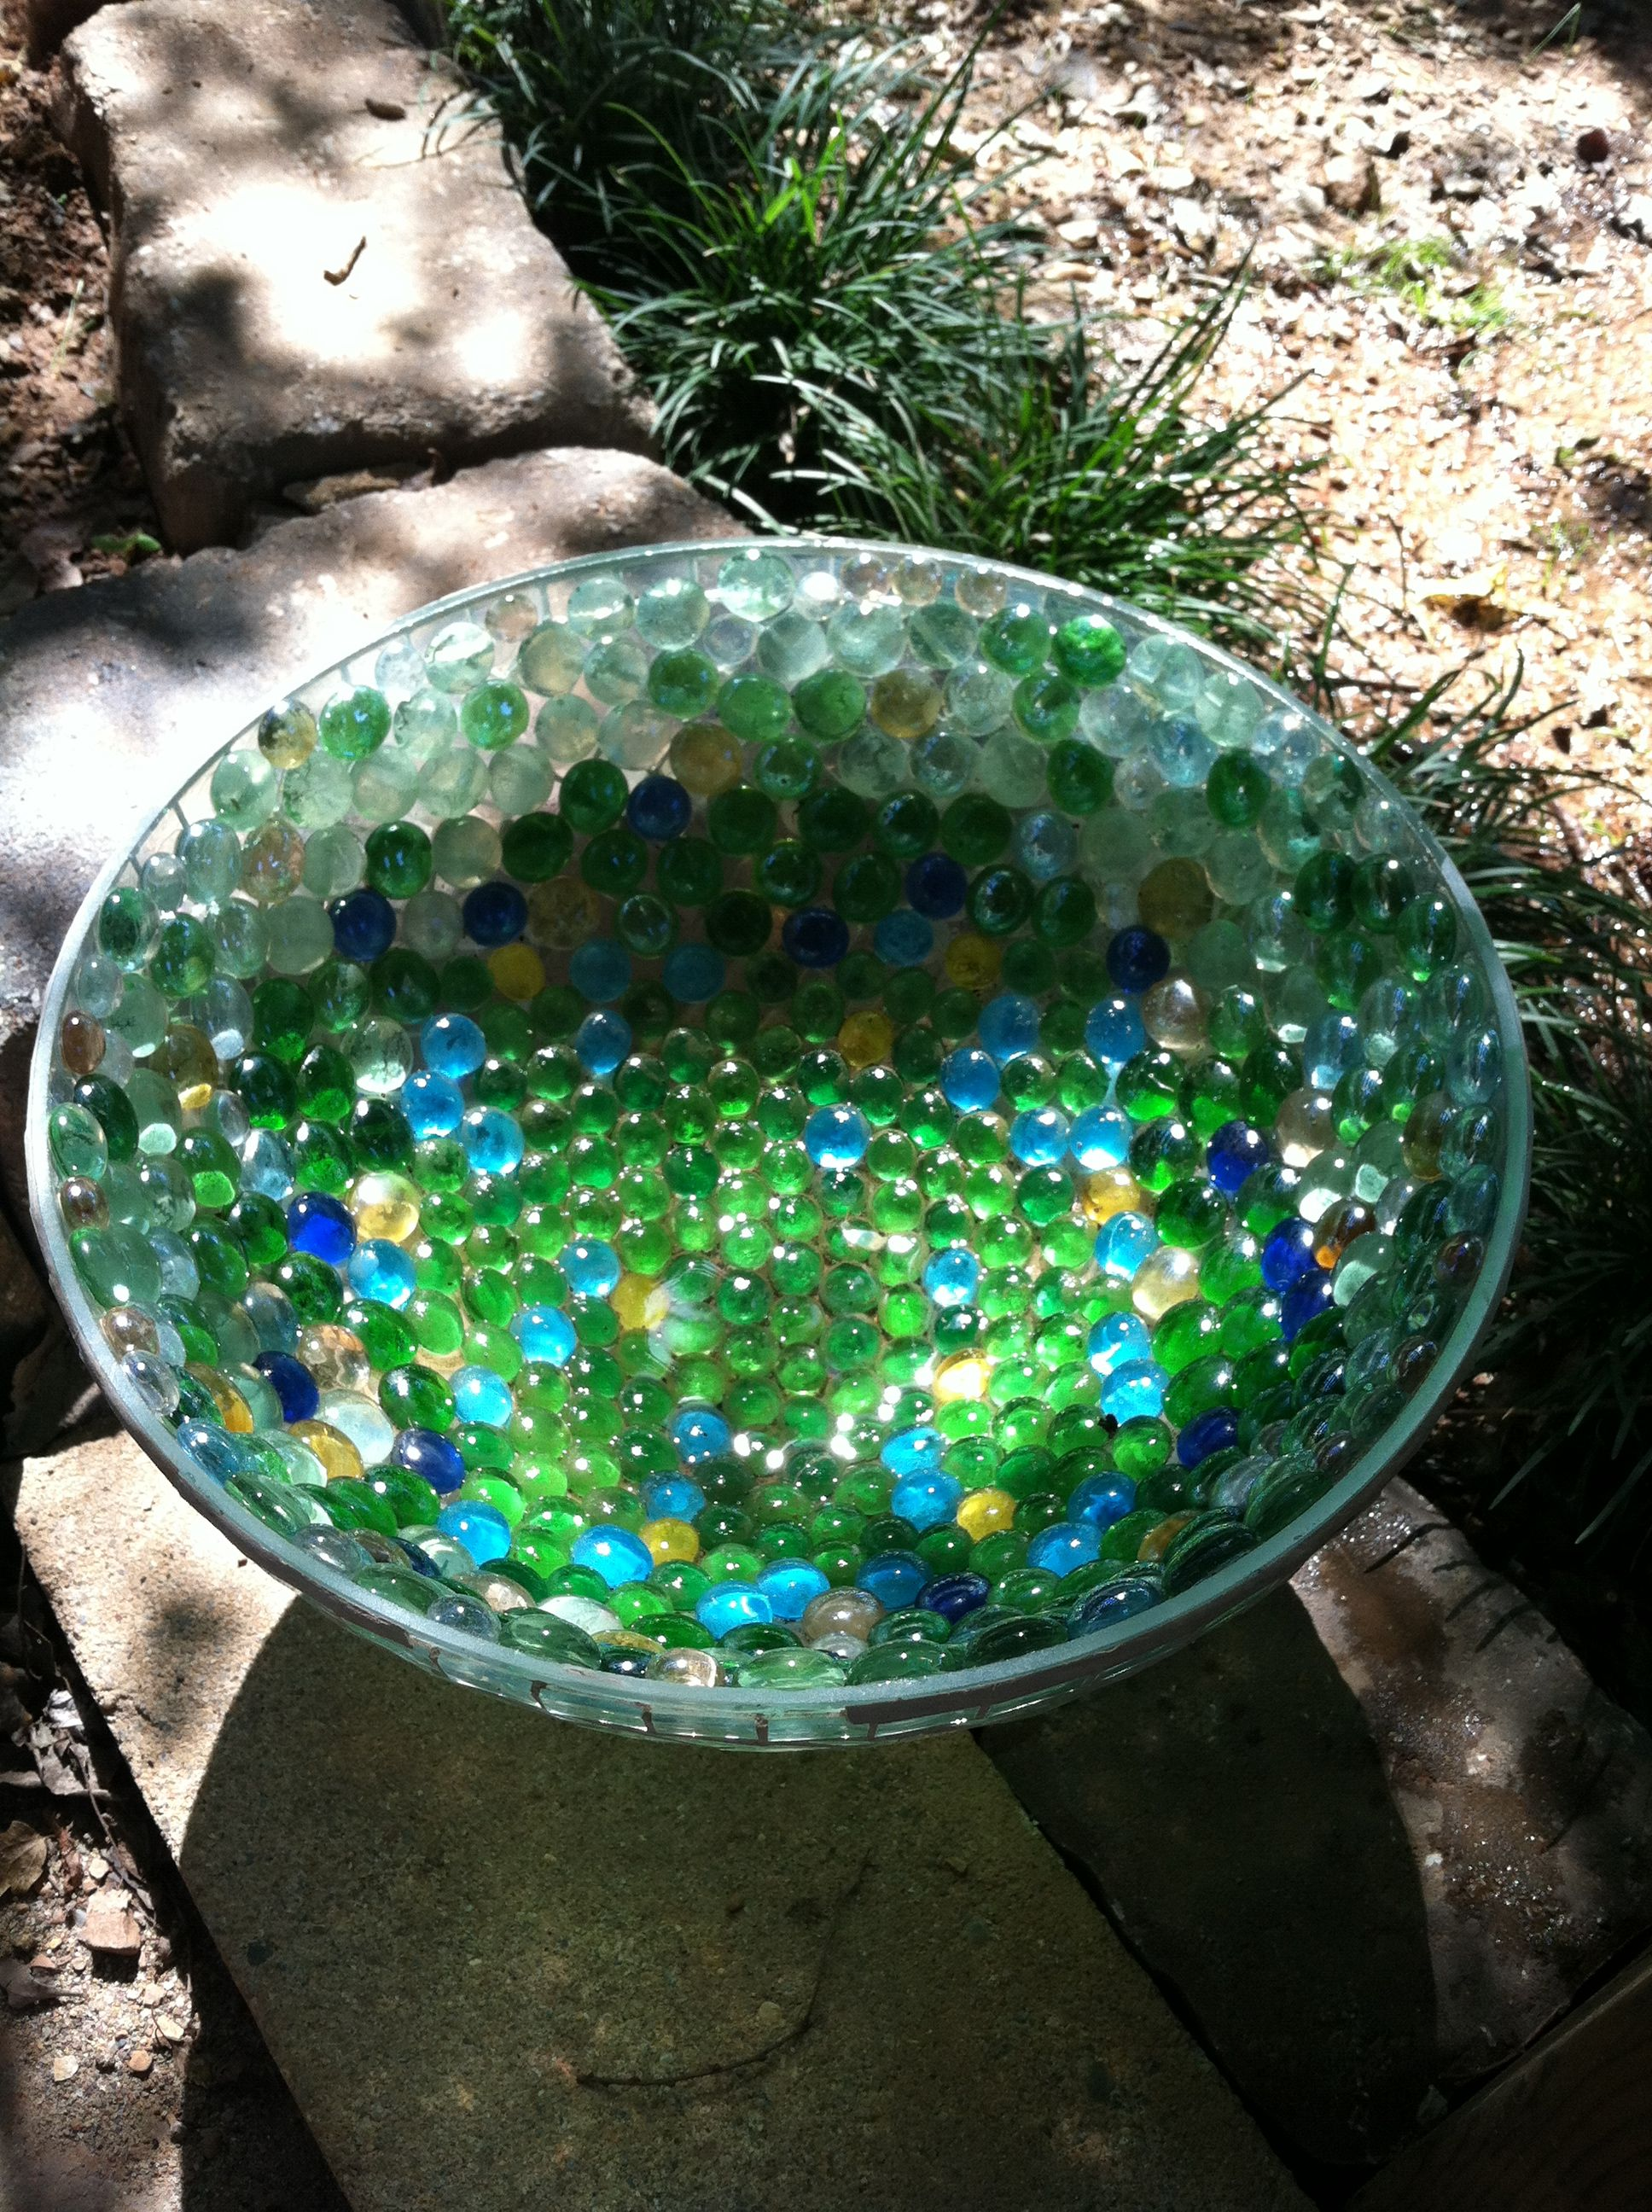 I Glued Glass Decorative Marbles To The Inside Of This Large Glass Bowl Placed Outside On Patio Filled With Water And Floa Glass Crafts Diy Glass Glass Gems Large glass decorative bowl